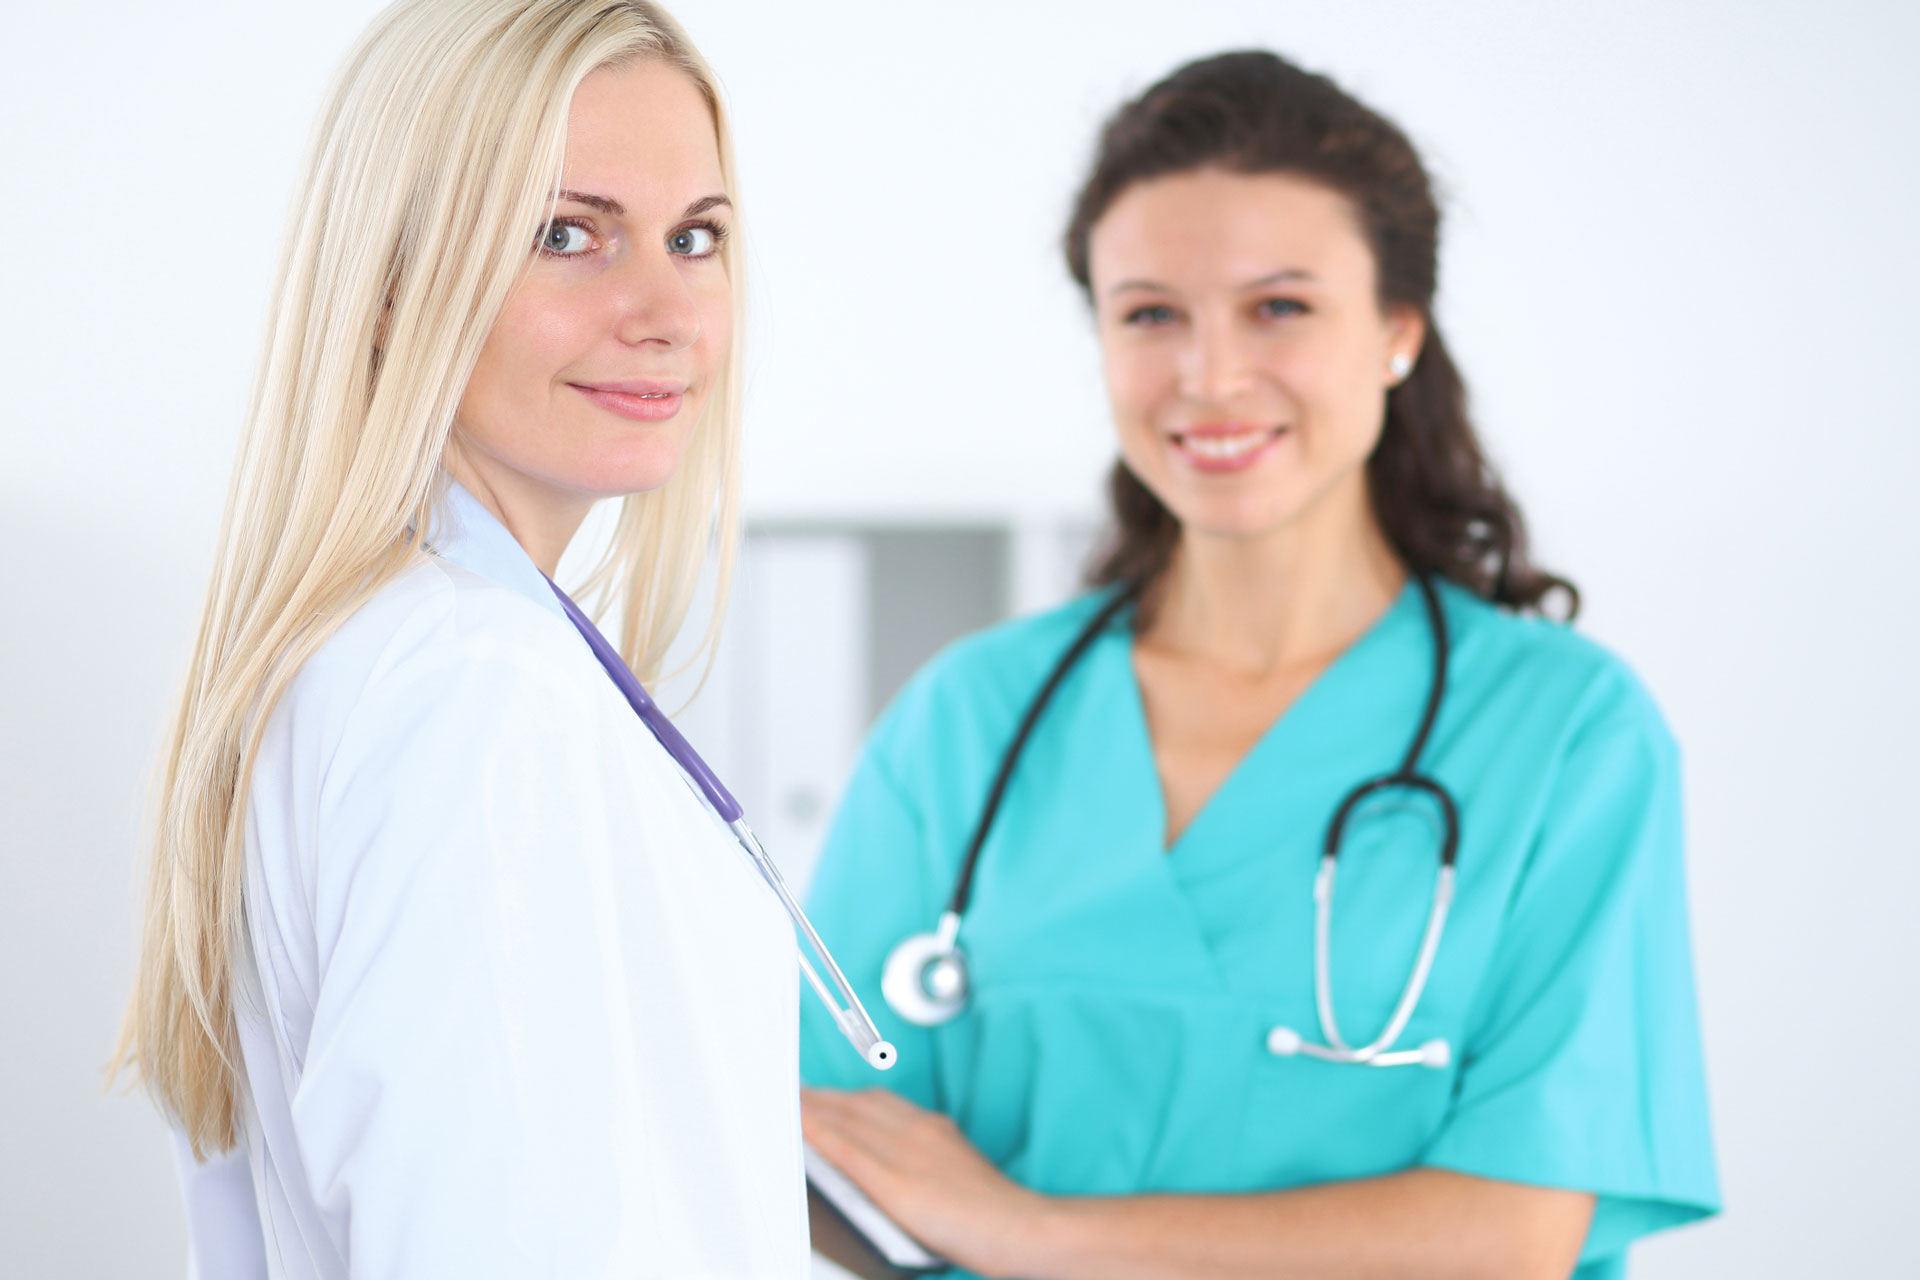 Nurse Practitioner Working